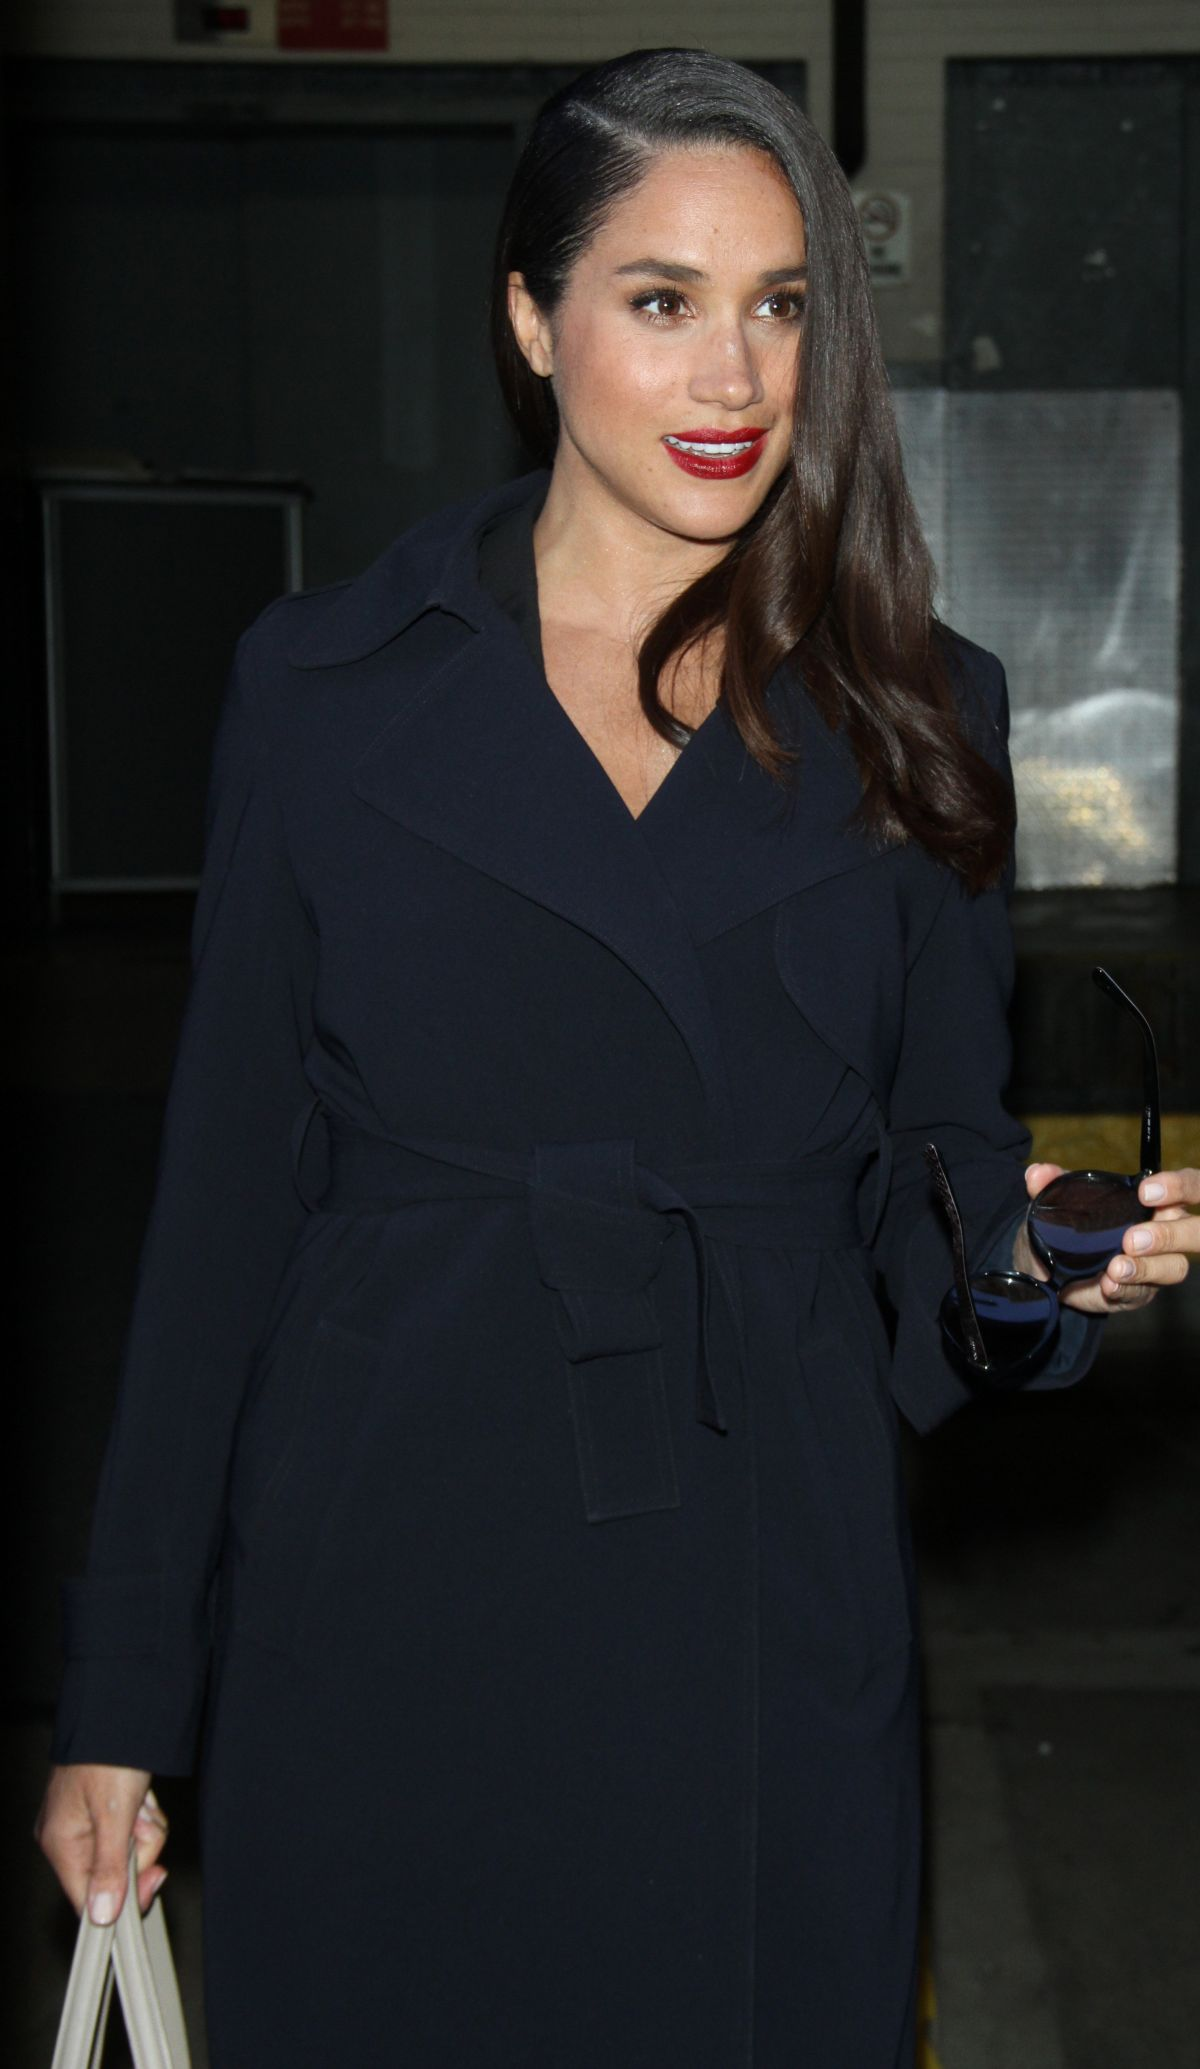 MEGHAN MARKLE at AOL Studio in New York 03/17/2016 - HawtCelebs ...